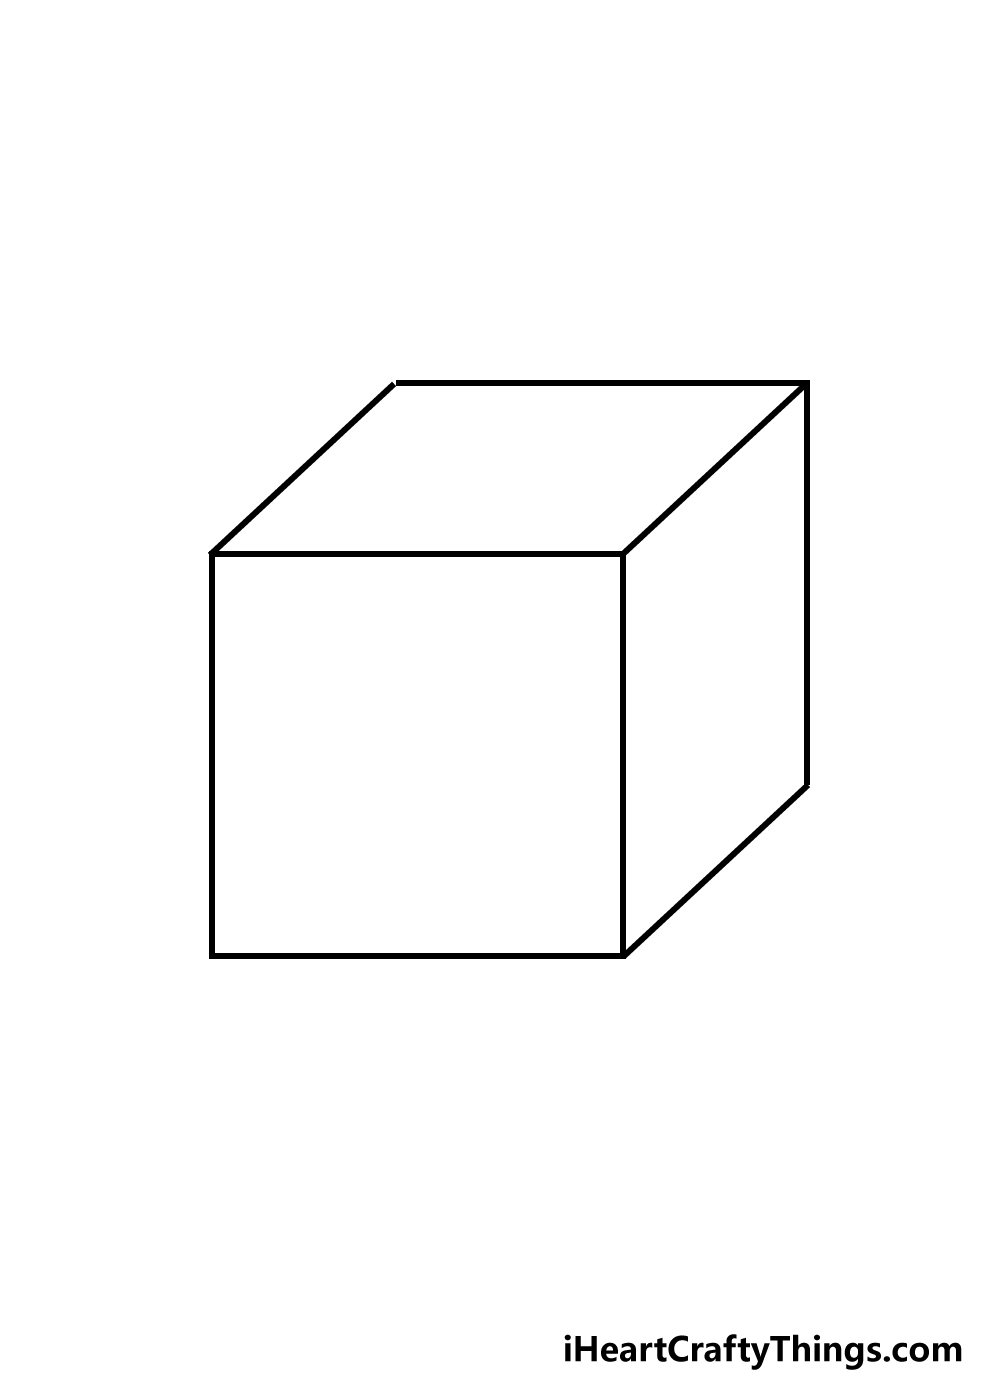 cube drawing step 5